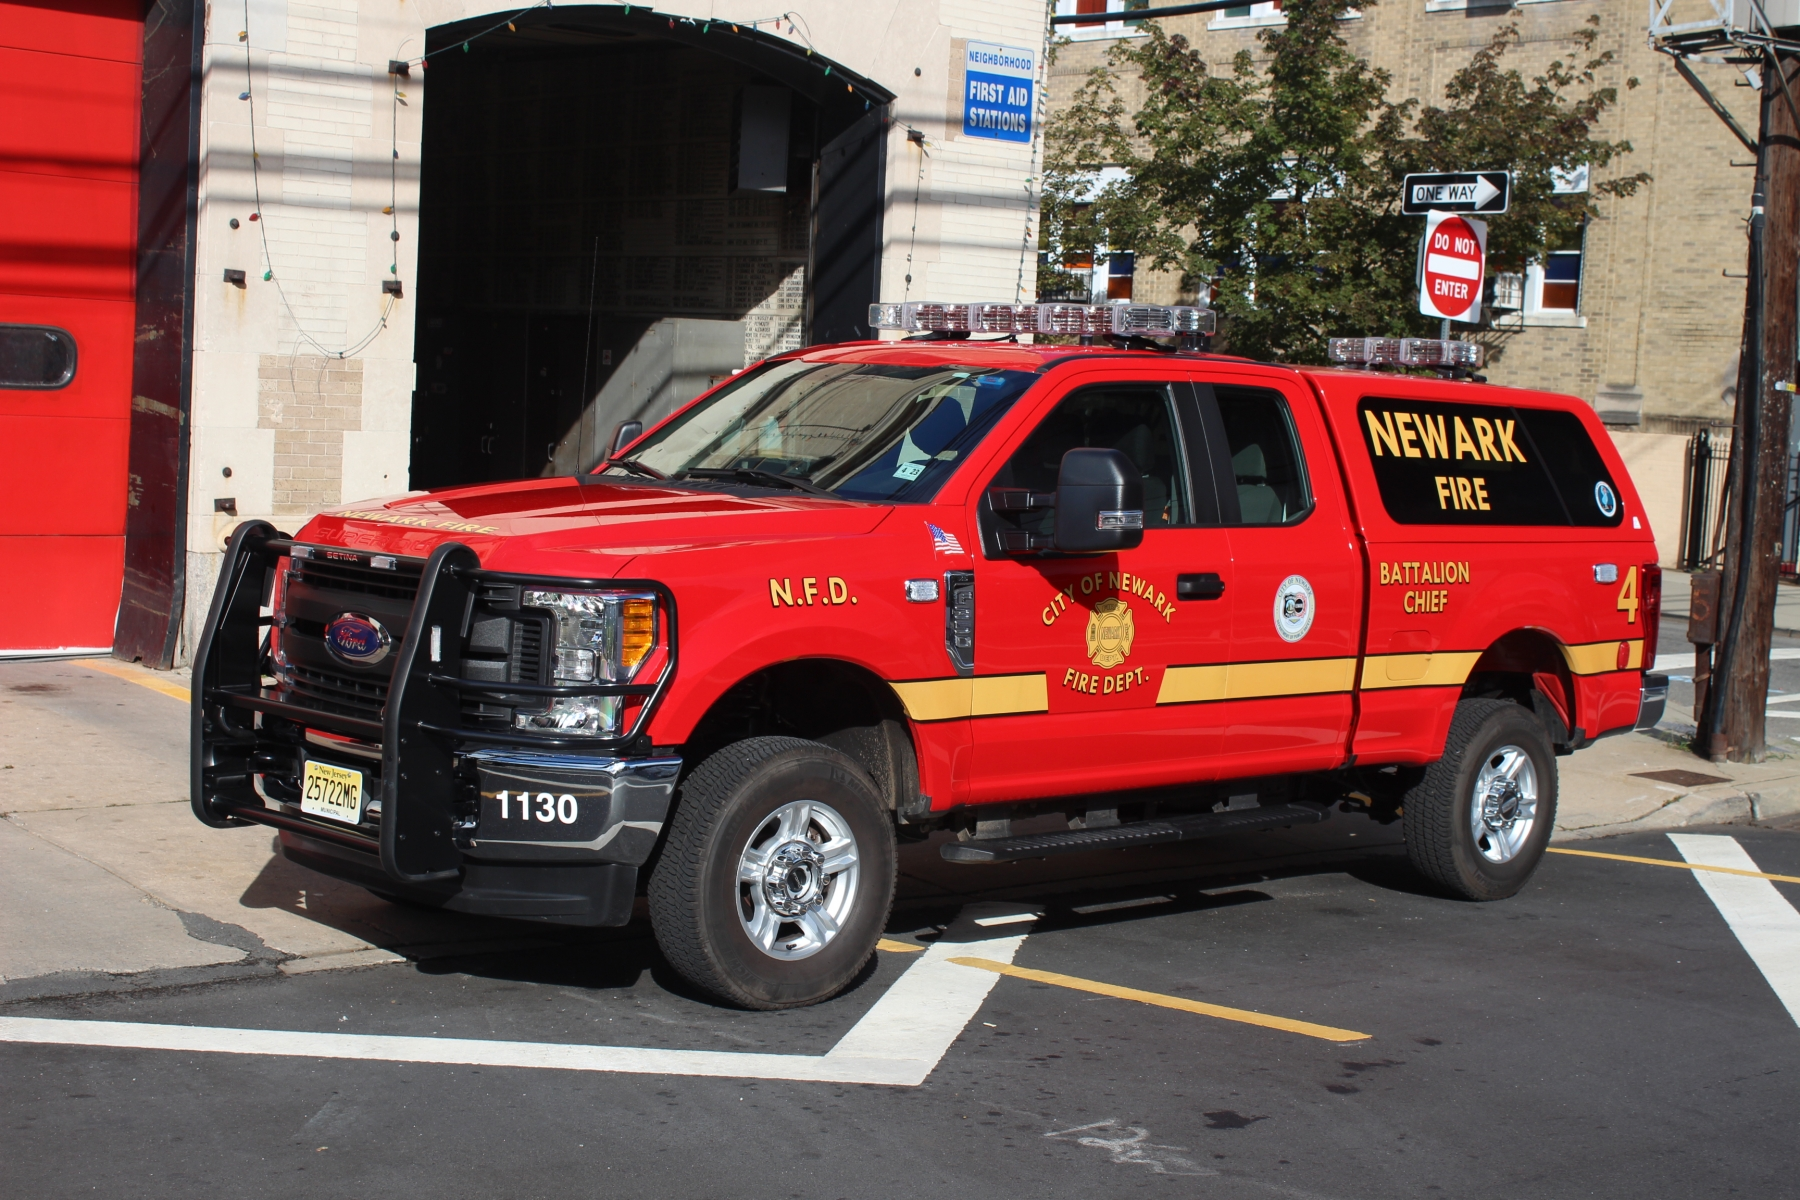 NJ, Newark Fire Department Command Car